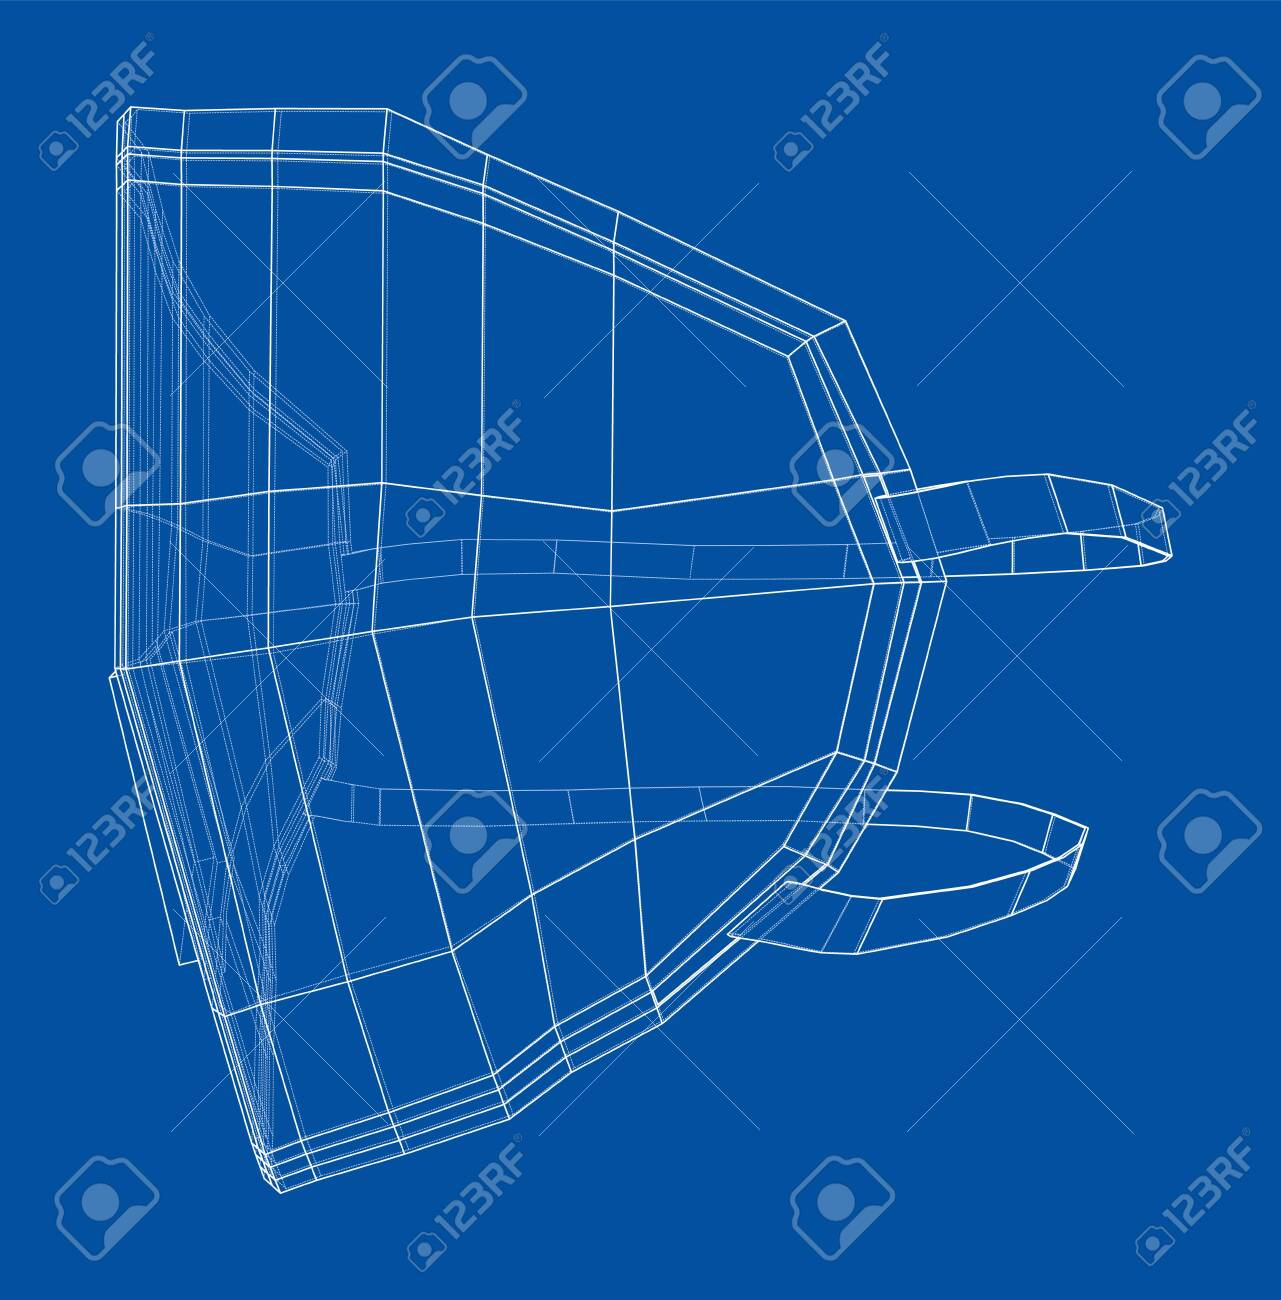 Medical surgical mask. Blueprint style. Vector - 143869753